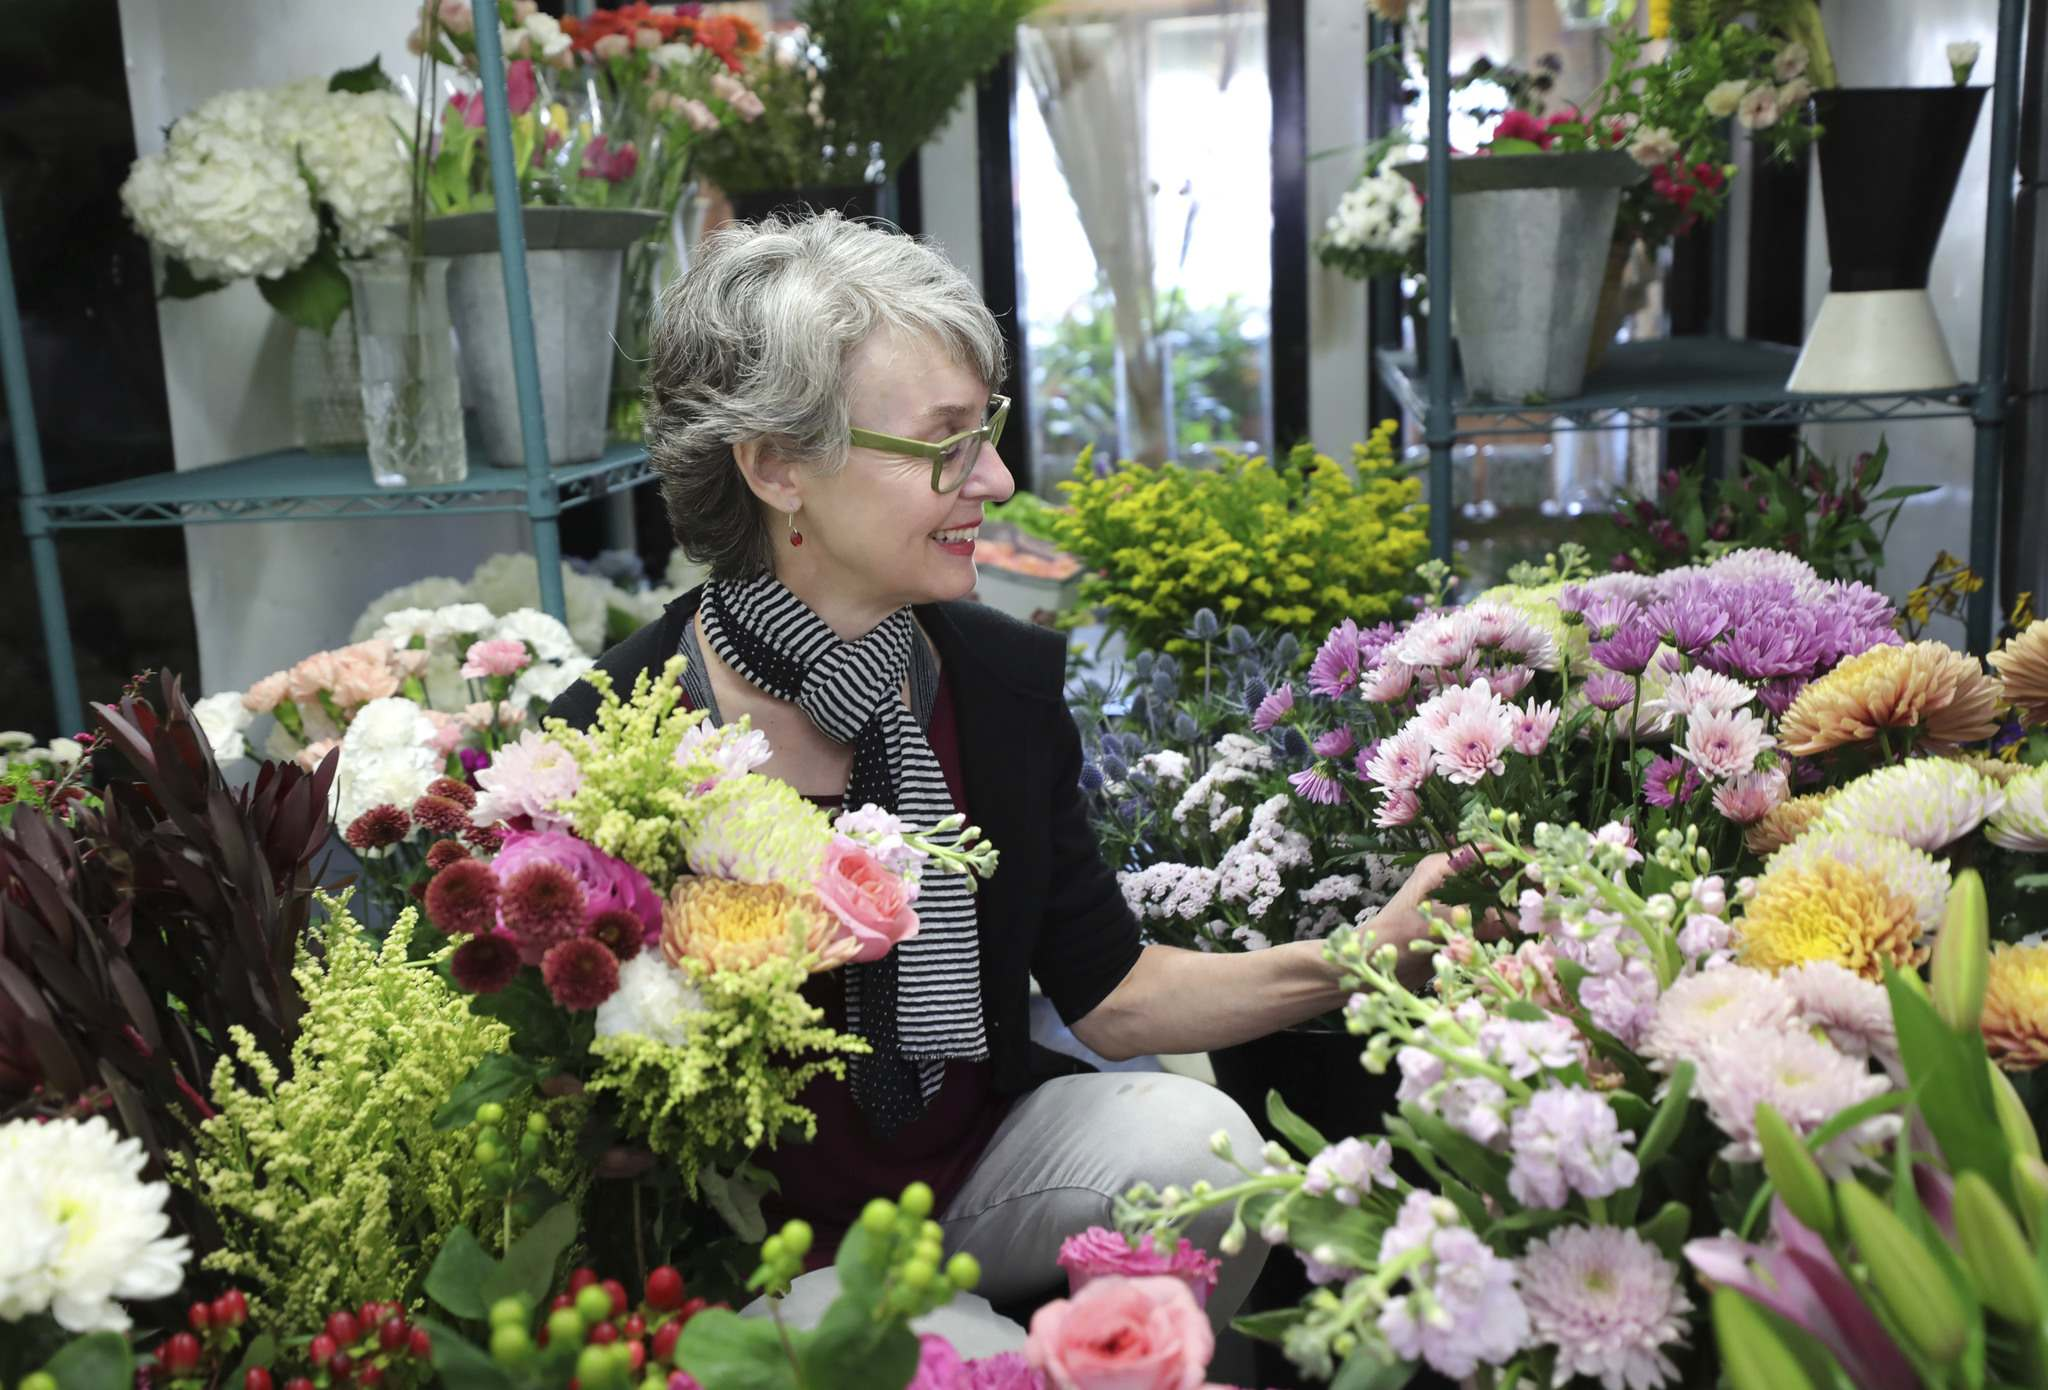 Michele Pitre, owner of Norwood Florist Design Studio, is heading into Mothers' Day, the busiest week of the year for the industry. The sector has experienced business increase by 30 per cent during the past year because people are sending more flowers since they can't meet in person. (Ruth Bonneville / Winnipeg Free Press)